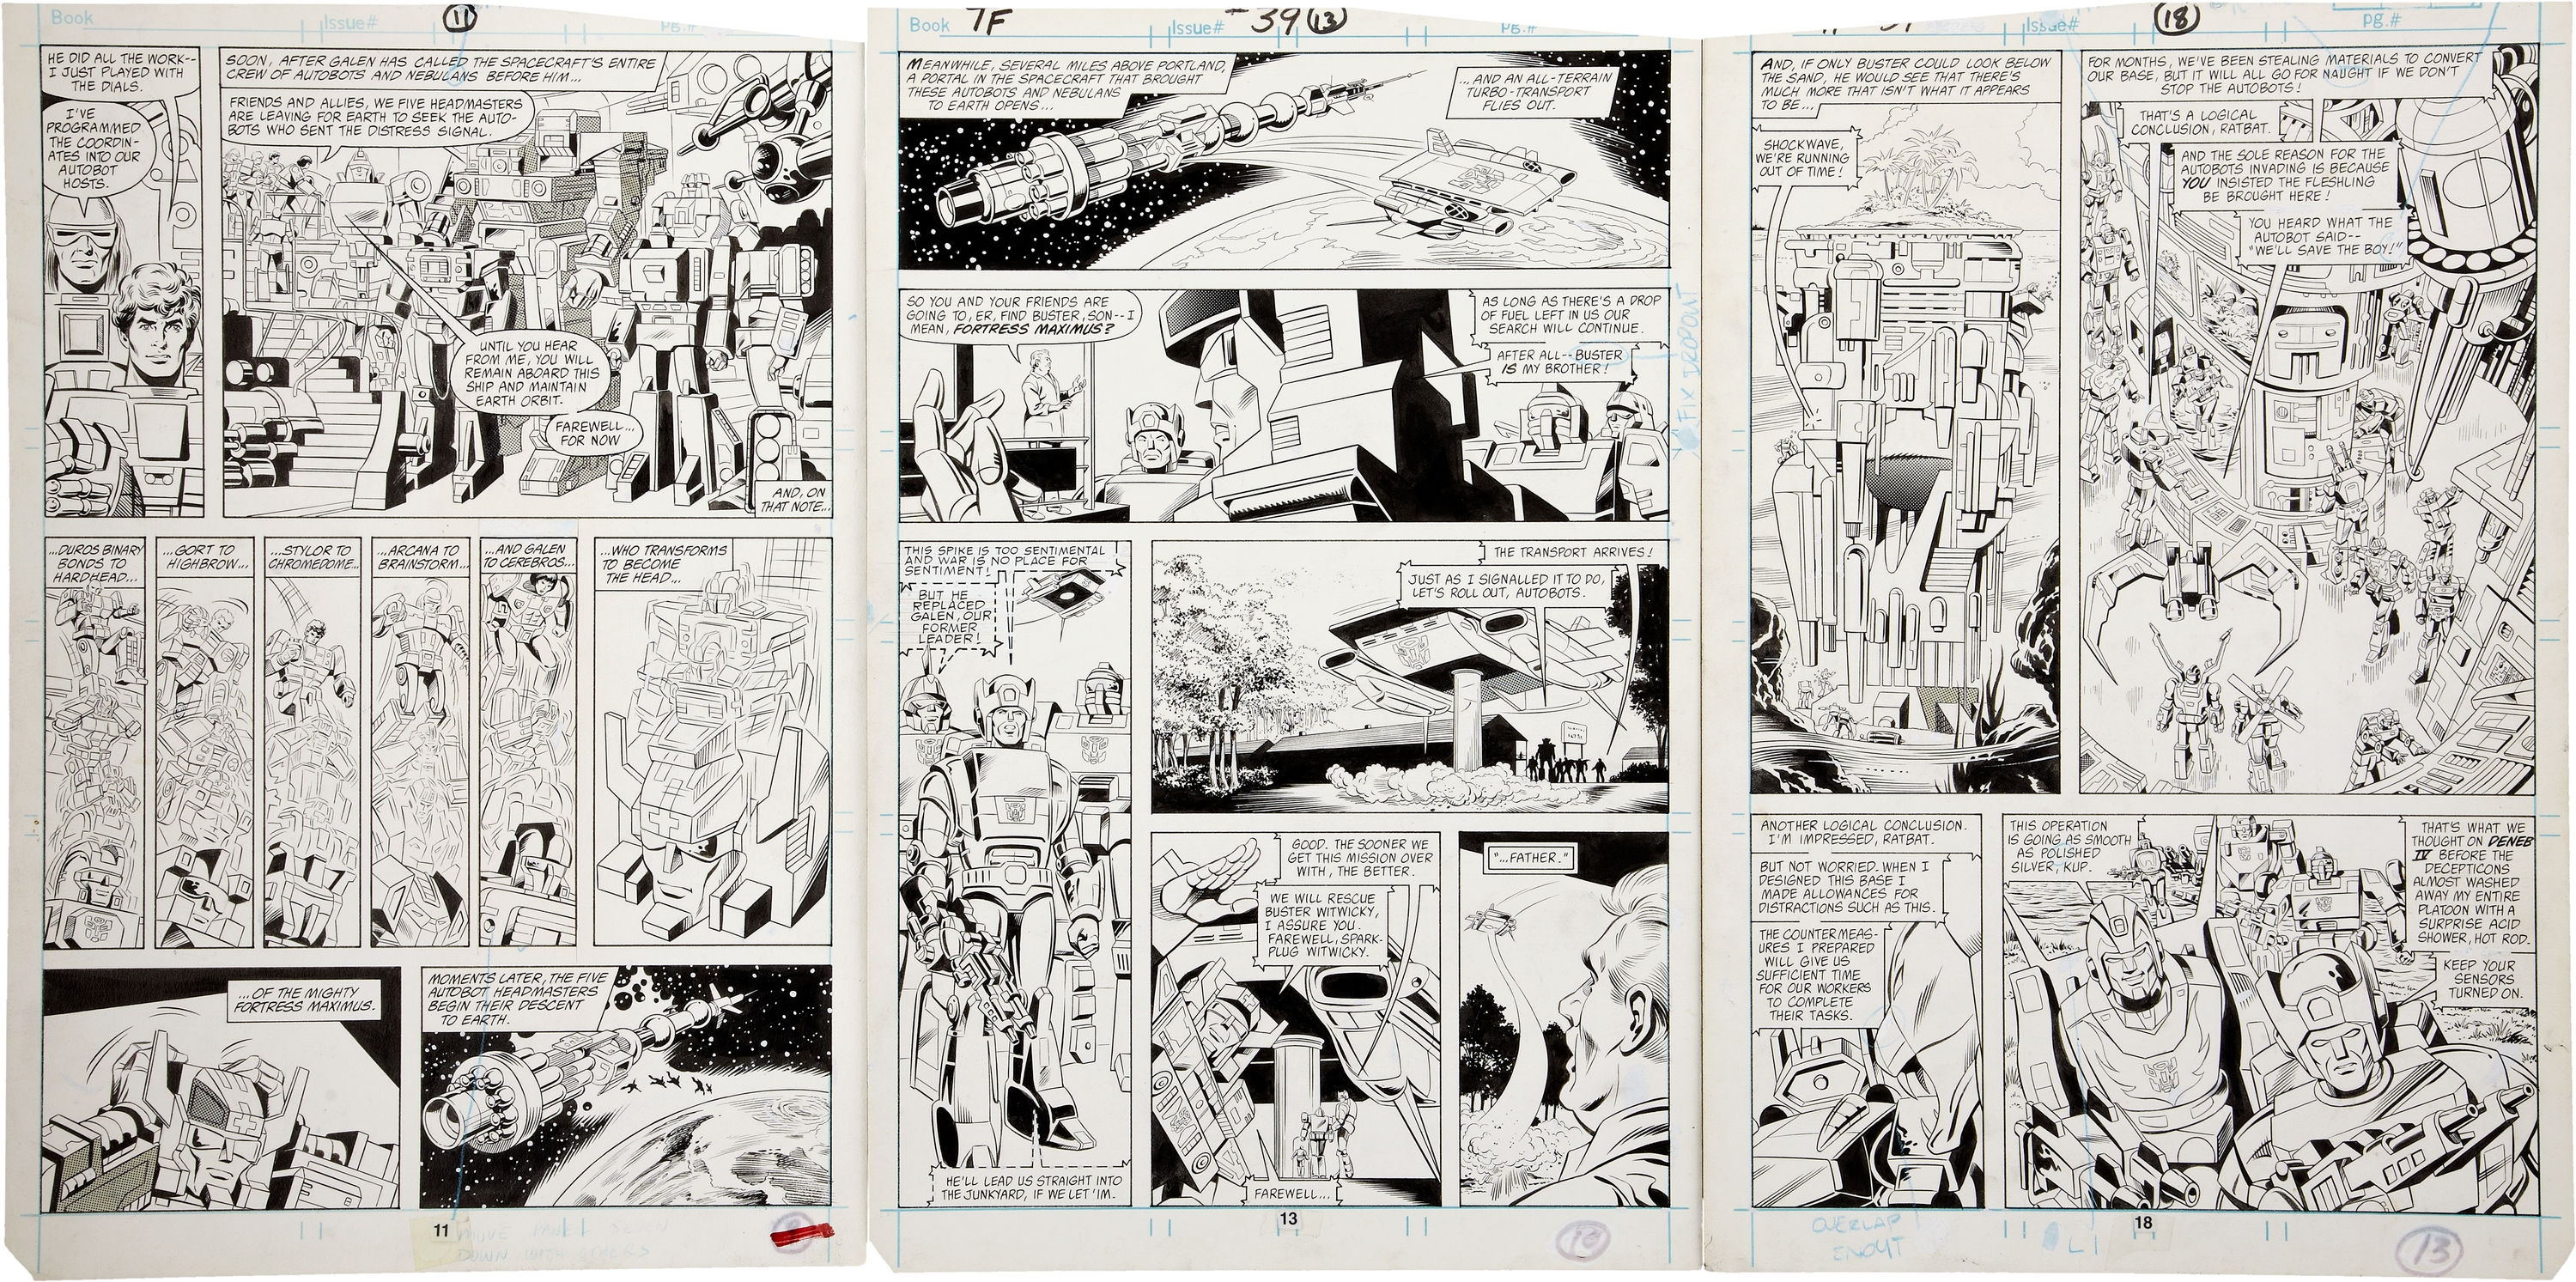 Be Nelson Yomtov! (Colorists, Tackle an Original Transformers Marvel Comics Page!)-jose-20delbo-20transformers-20multiple-20pages-2009.jpg